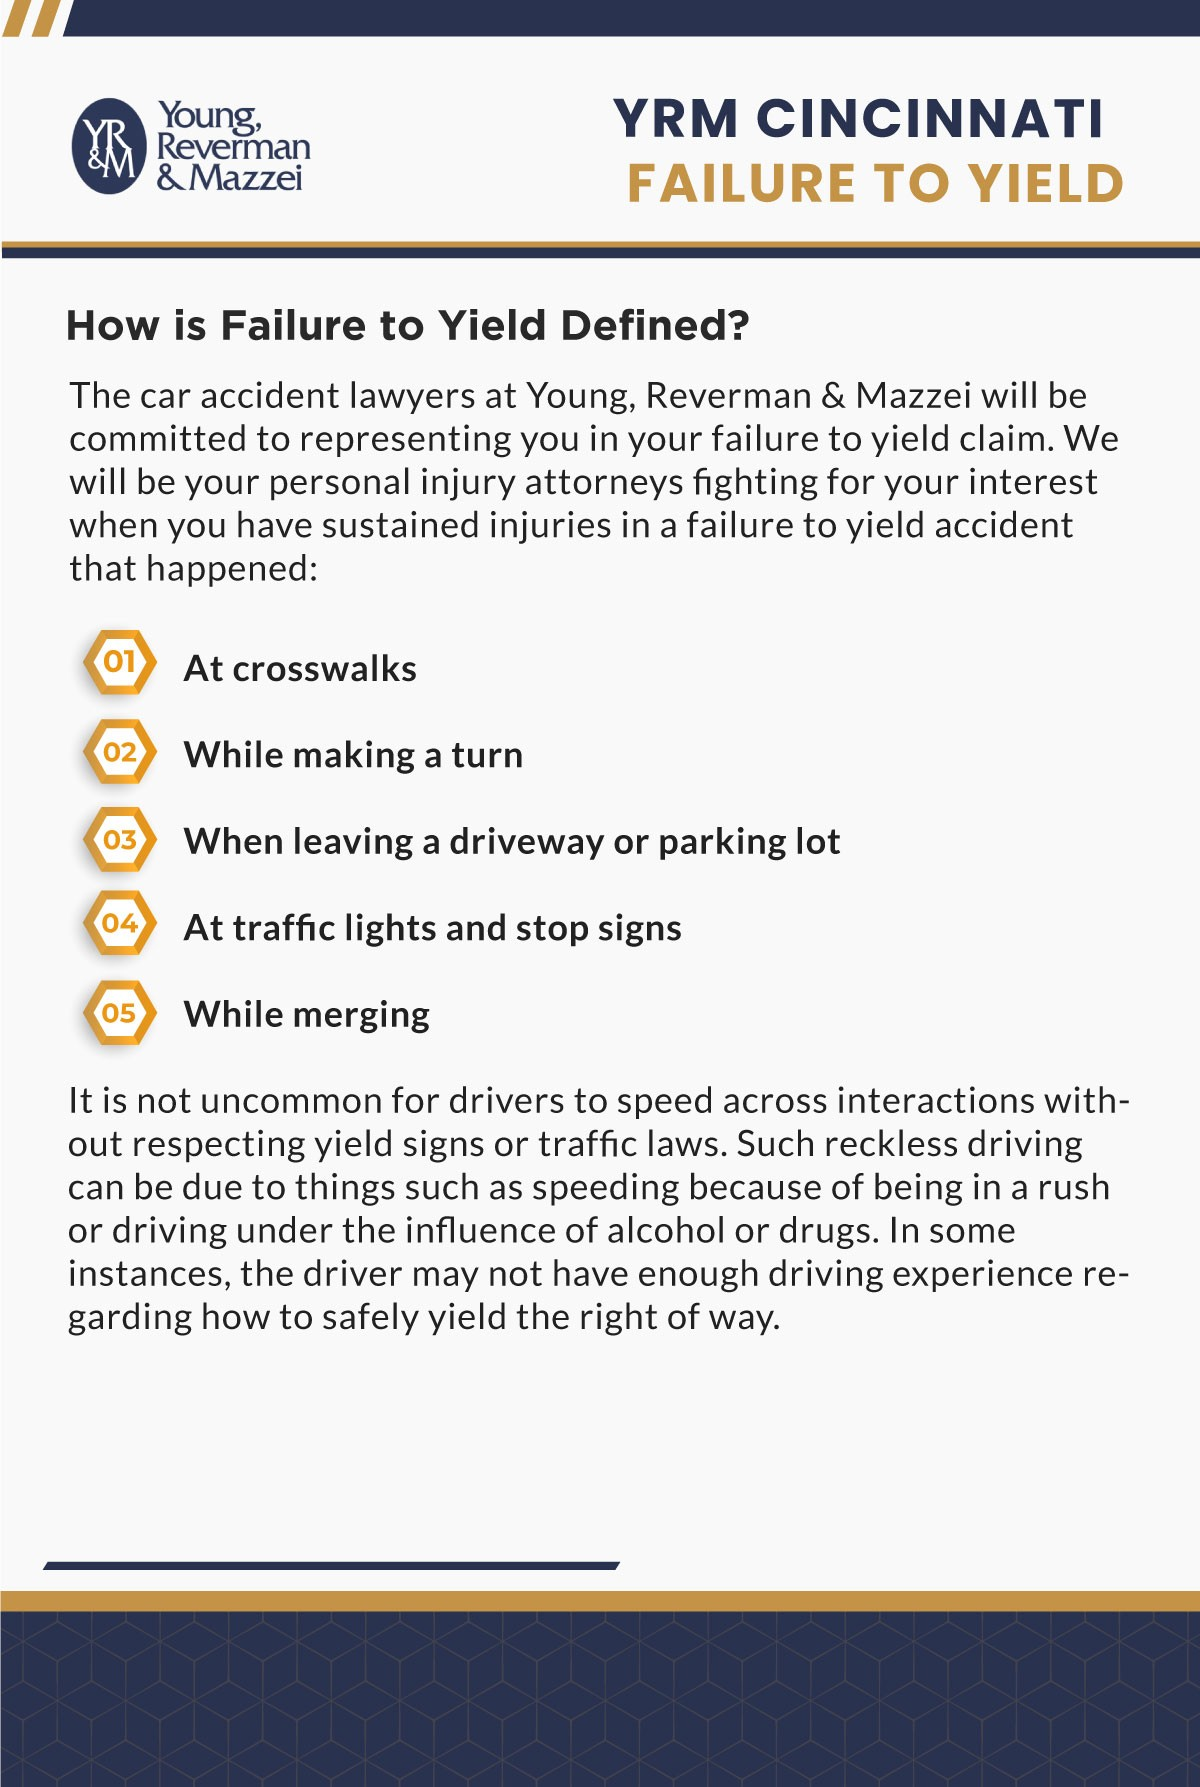 Cincinnati Failure To Yield Accident Lawyer Infographic